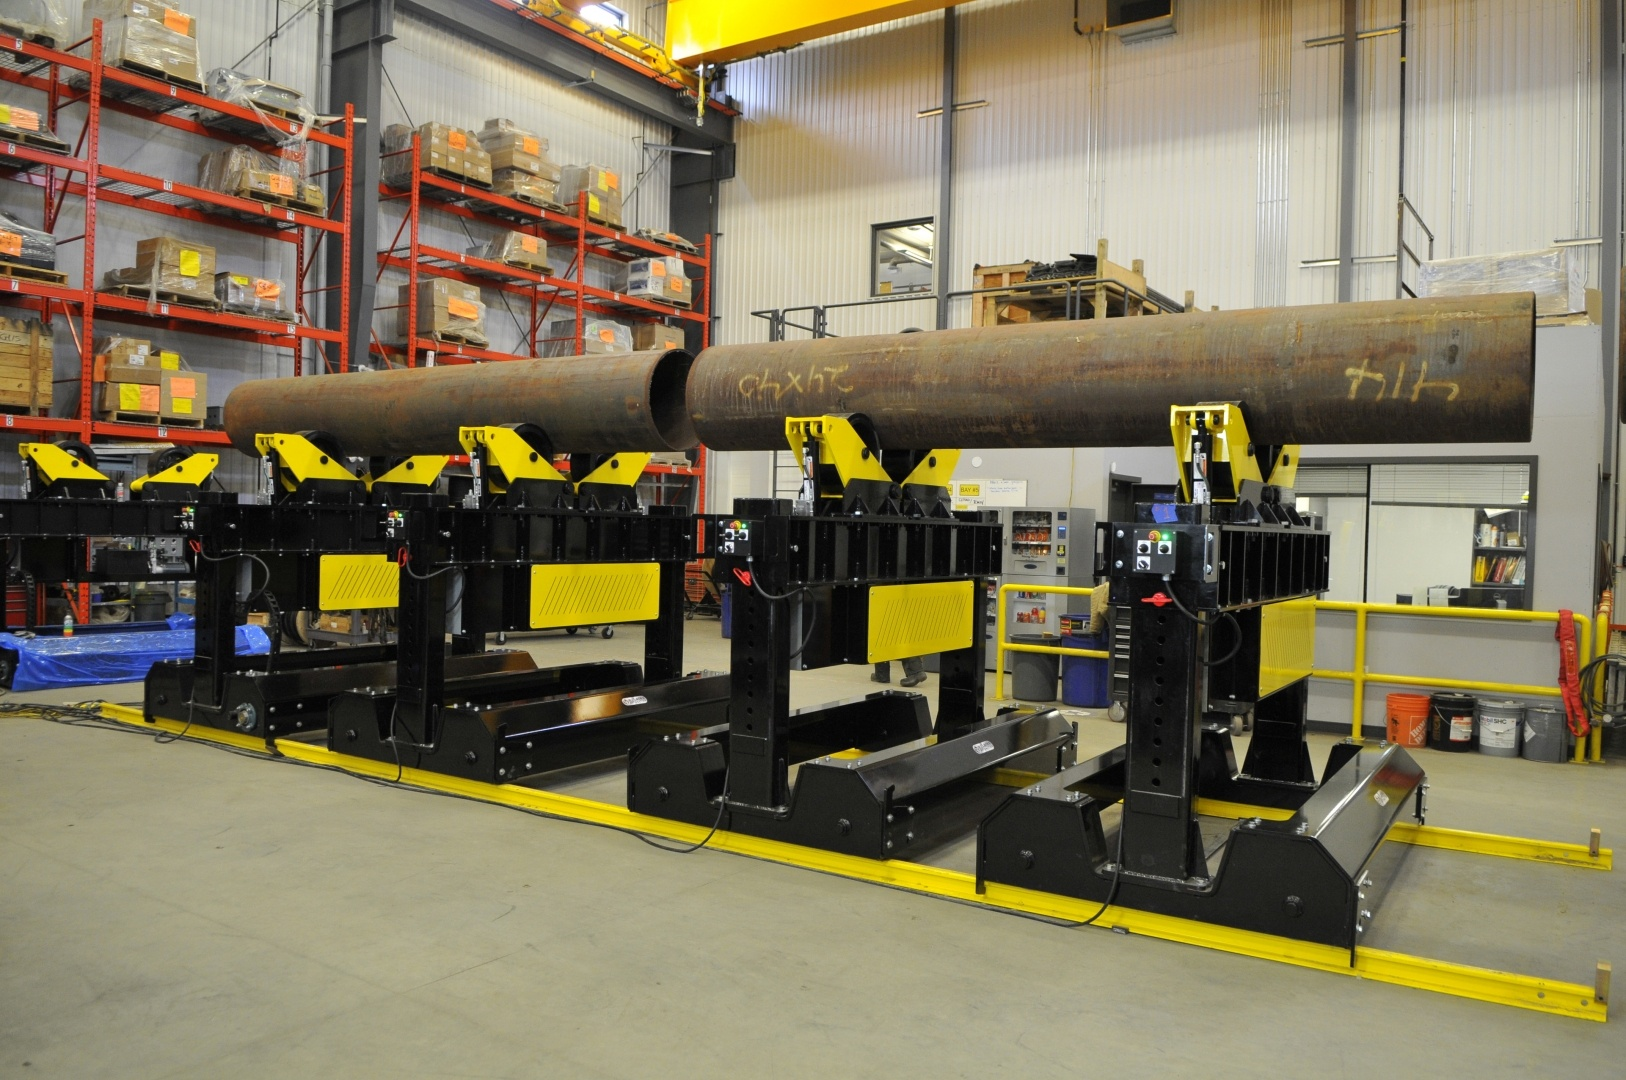 pipe fit up roller bed system for sale